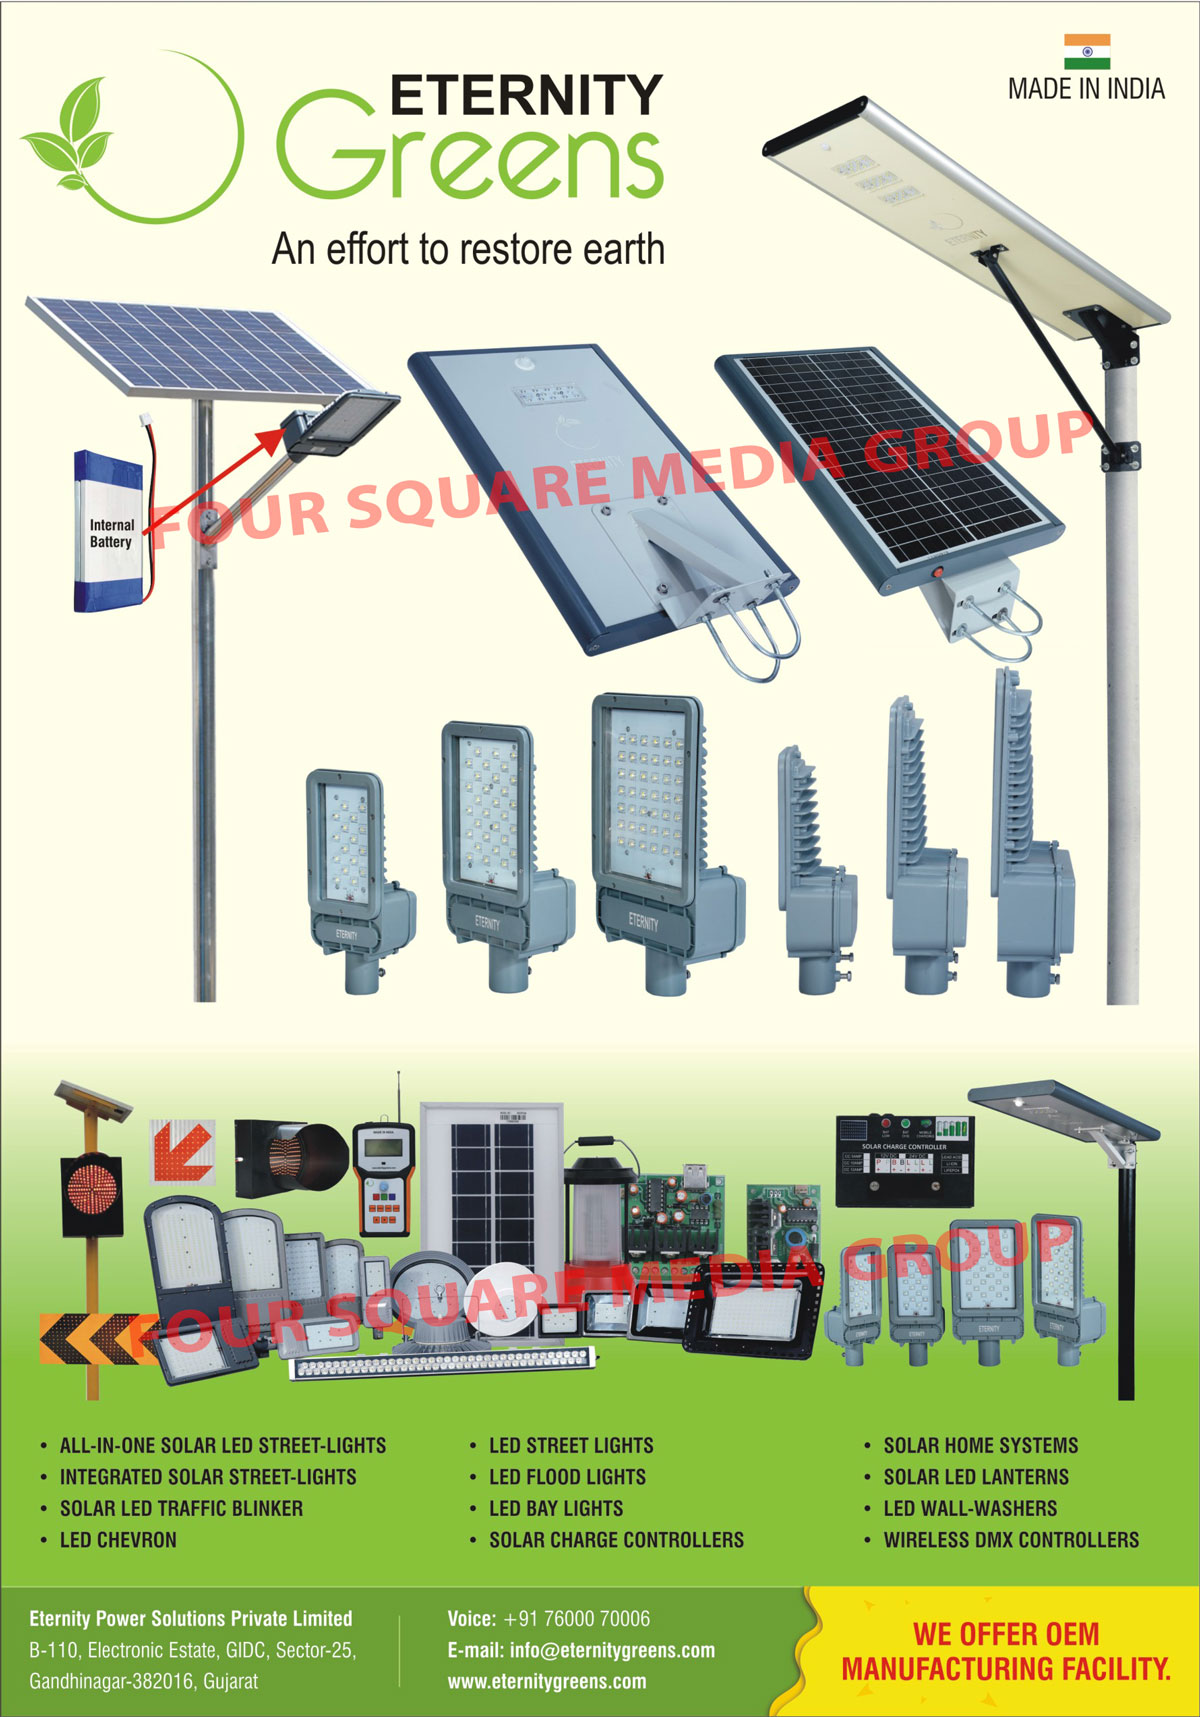 Led Lights, Solar Led Street Lights, Integrated Solar Street Lights, Solar Led Traffic Blinkers, Led Chevron, Led Street Lights, Led Flood Lights, Led Bay Lights, Solar Charge Controllers, Solar Home Systems, Solar Led Lanterns, Led Wall Washers, Wireless DMX Controllers